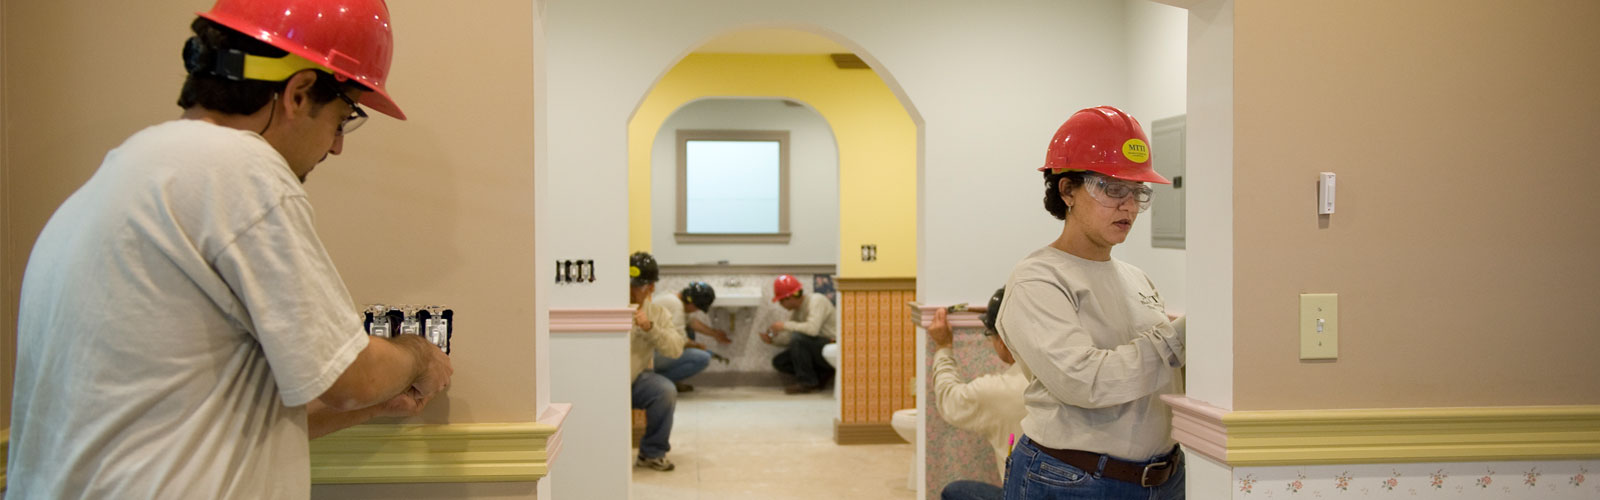 Interior view of a home moduleconstructed by MTTI Building Trades students